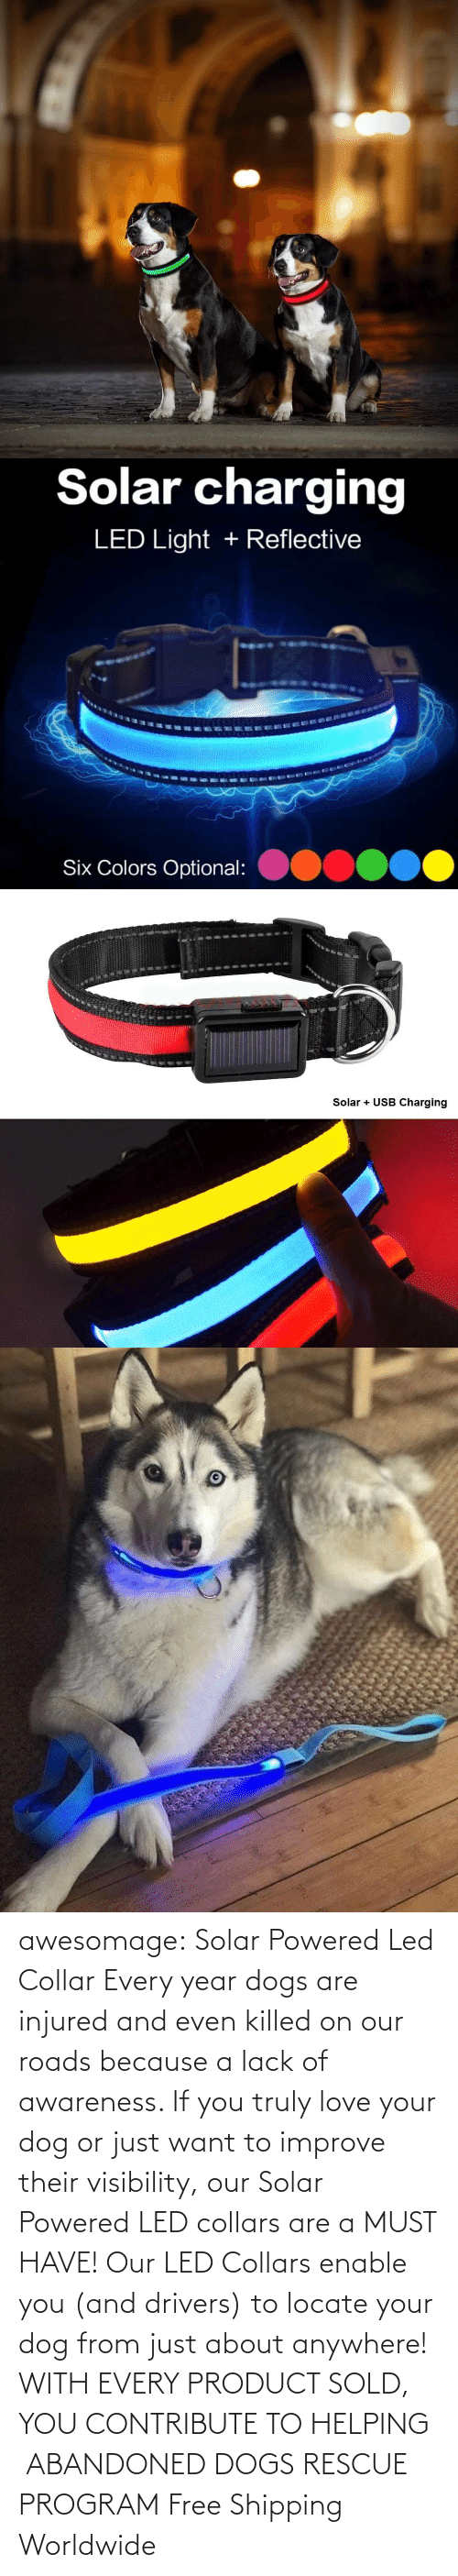 Dogs: awesomage: Solar Powered Led Collar   Every year dogs are injured and even killed on our roads because a lack of awareness. If you truly love your dog or just want to improve their visibility, our Solar Powered LED collars are a MUST HAVE!   Our LED Collars enable you (and drivers) to locate your dog from just about anywhere!     WITH EVERY PRODUCT SOLD, YOU CONTRIBUTE TO HELPING  ABANDONED DOGS RESCUE PROGRAM     Free Shipping Worldwide